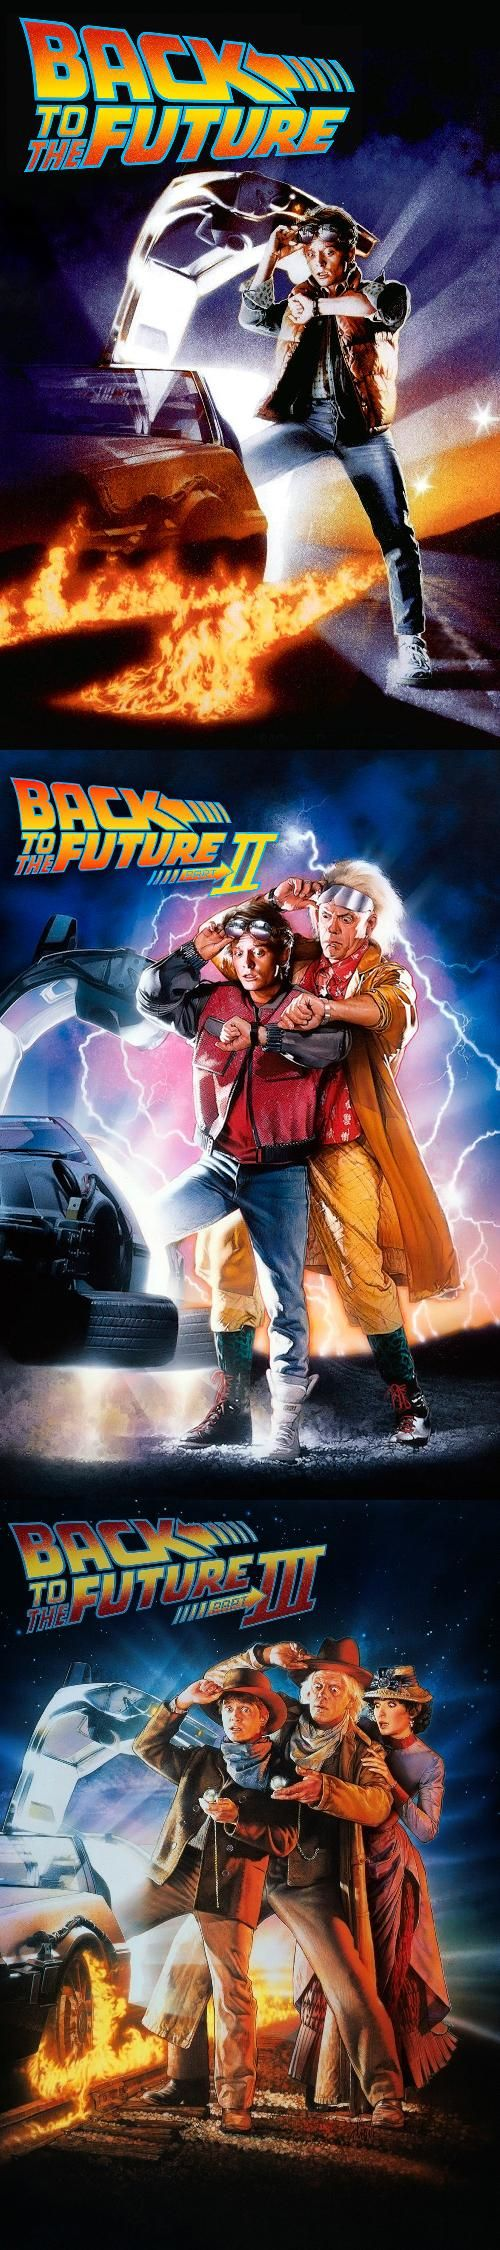 Back To The Future clipart dvd cover To Pinterest on Future the